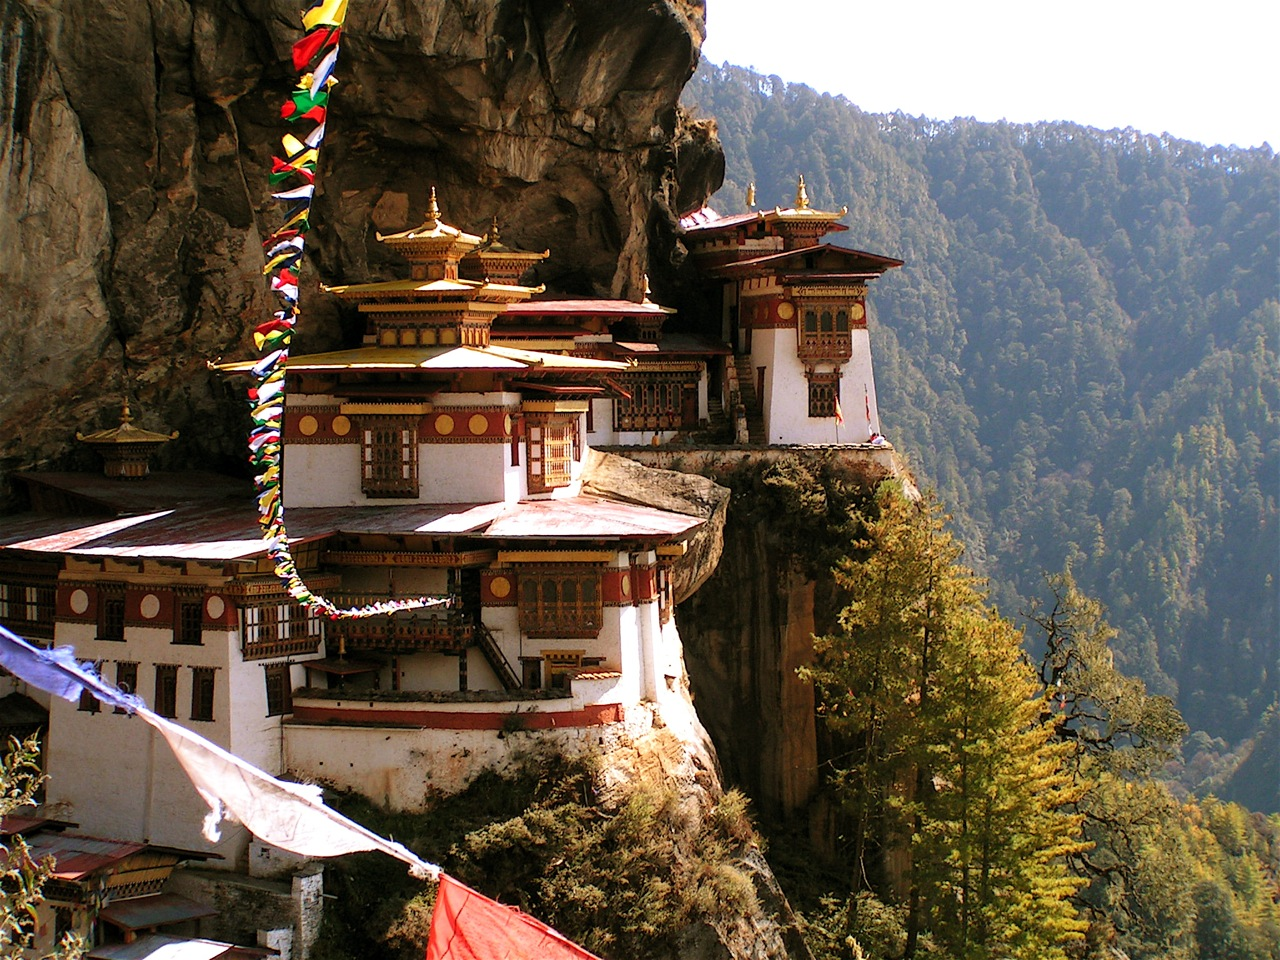 Taktsang Monastery, or The Tiger's Nest.